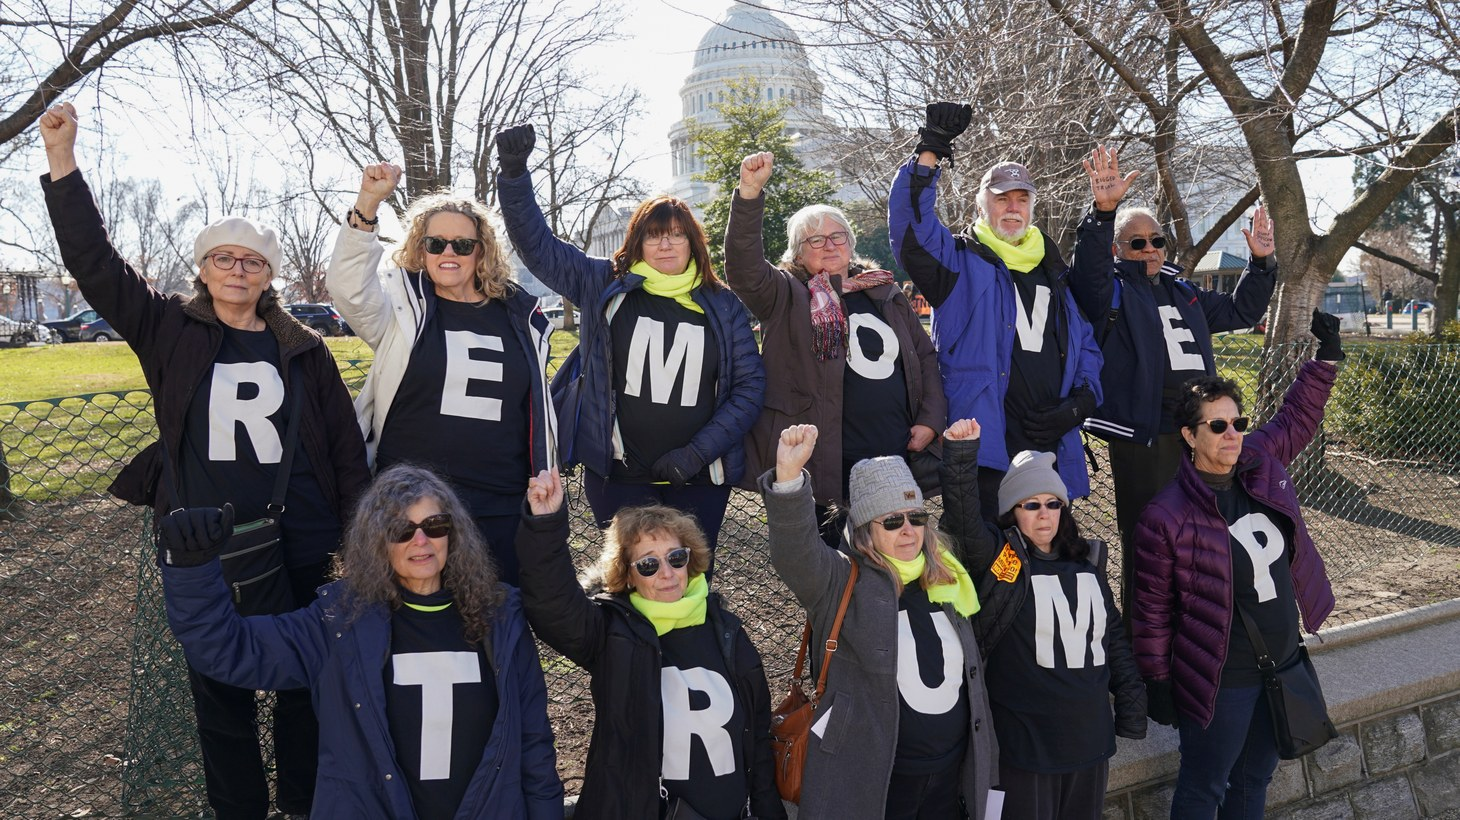 Demonstrators wave to passing motorists at the U.S. Capitol on the second day of the Senate impeachment trial of U.S. President Donald Trump in Washington U.S., January 22, 2020.